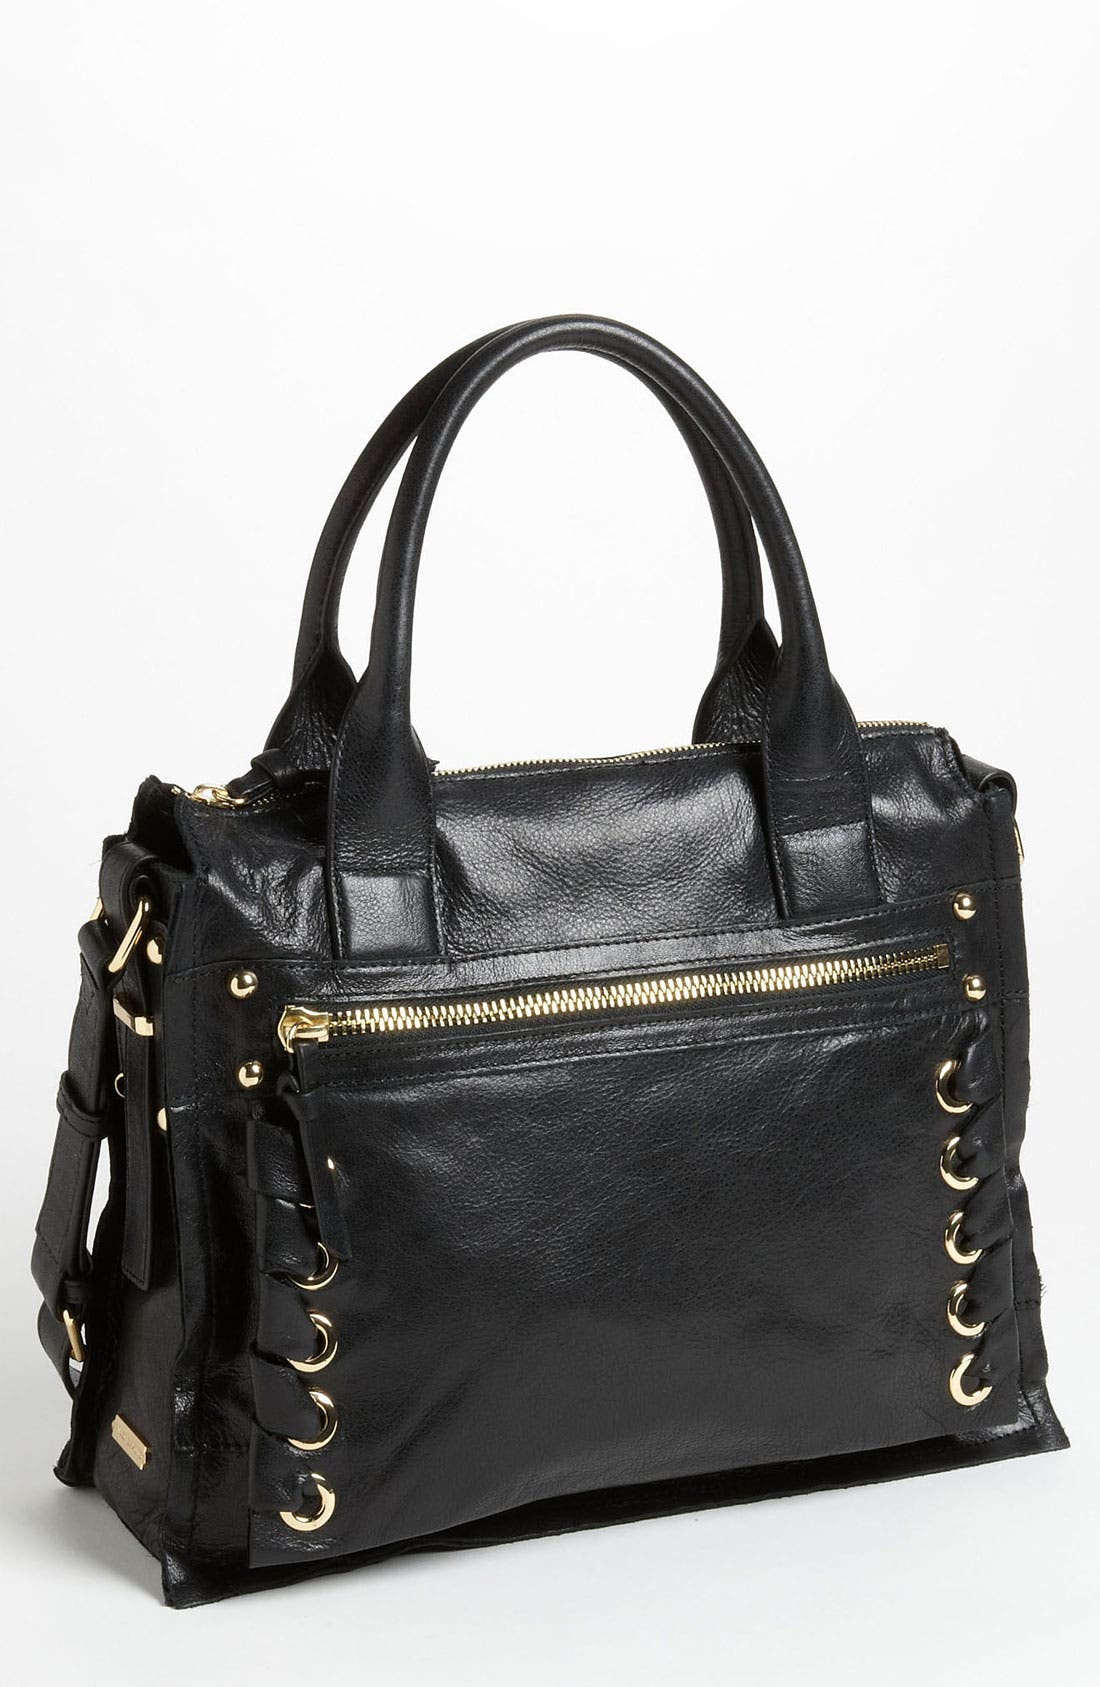 Alternate Image 1 Selected - Vince Camuto 'Mica' Satchel